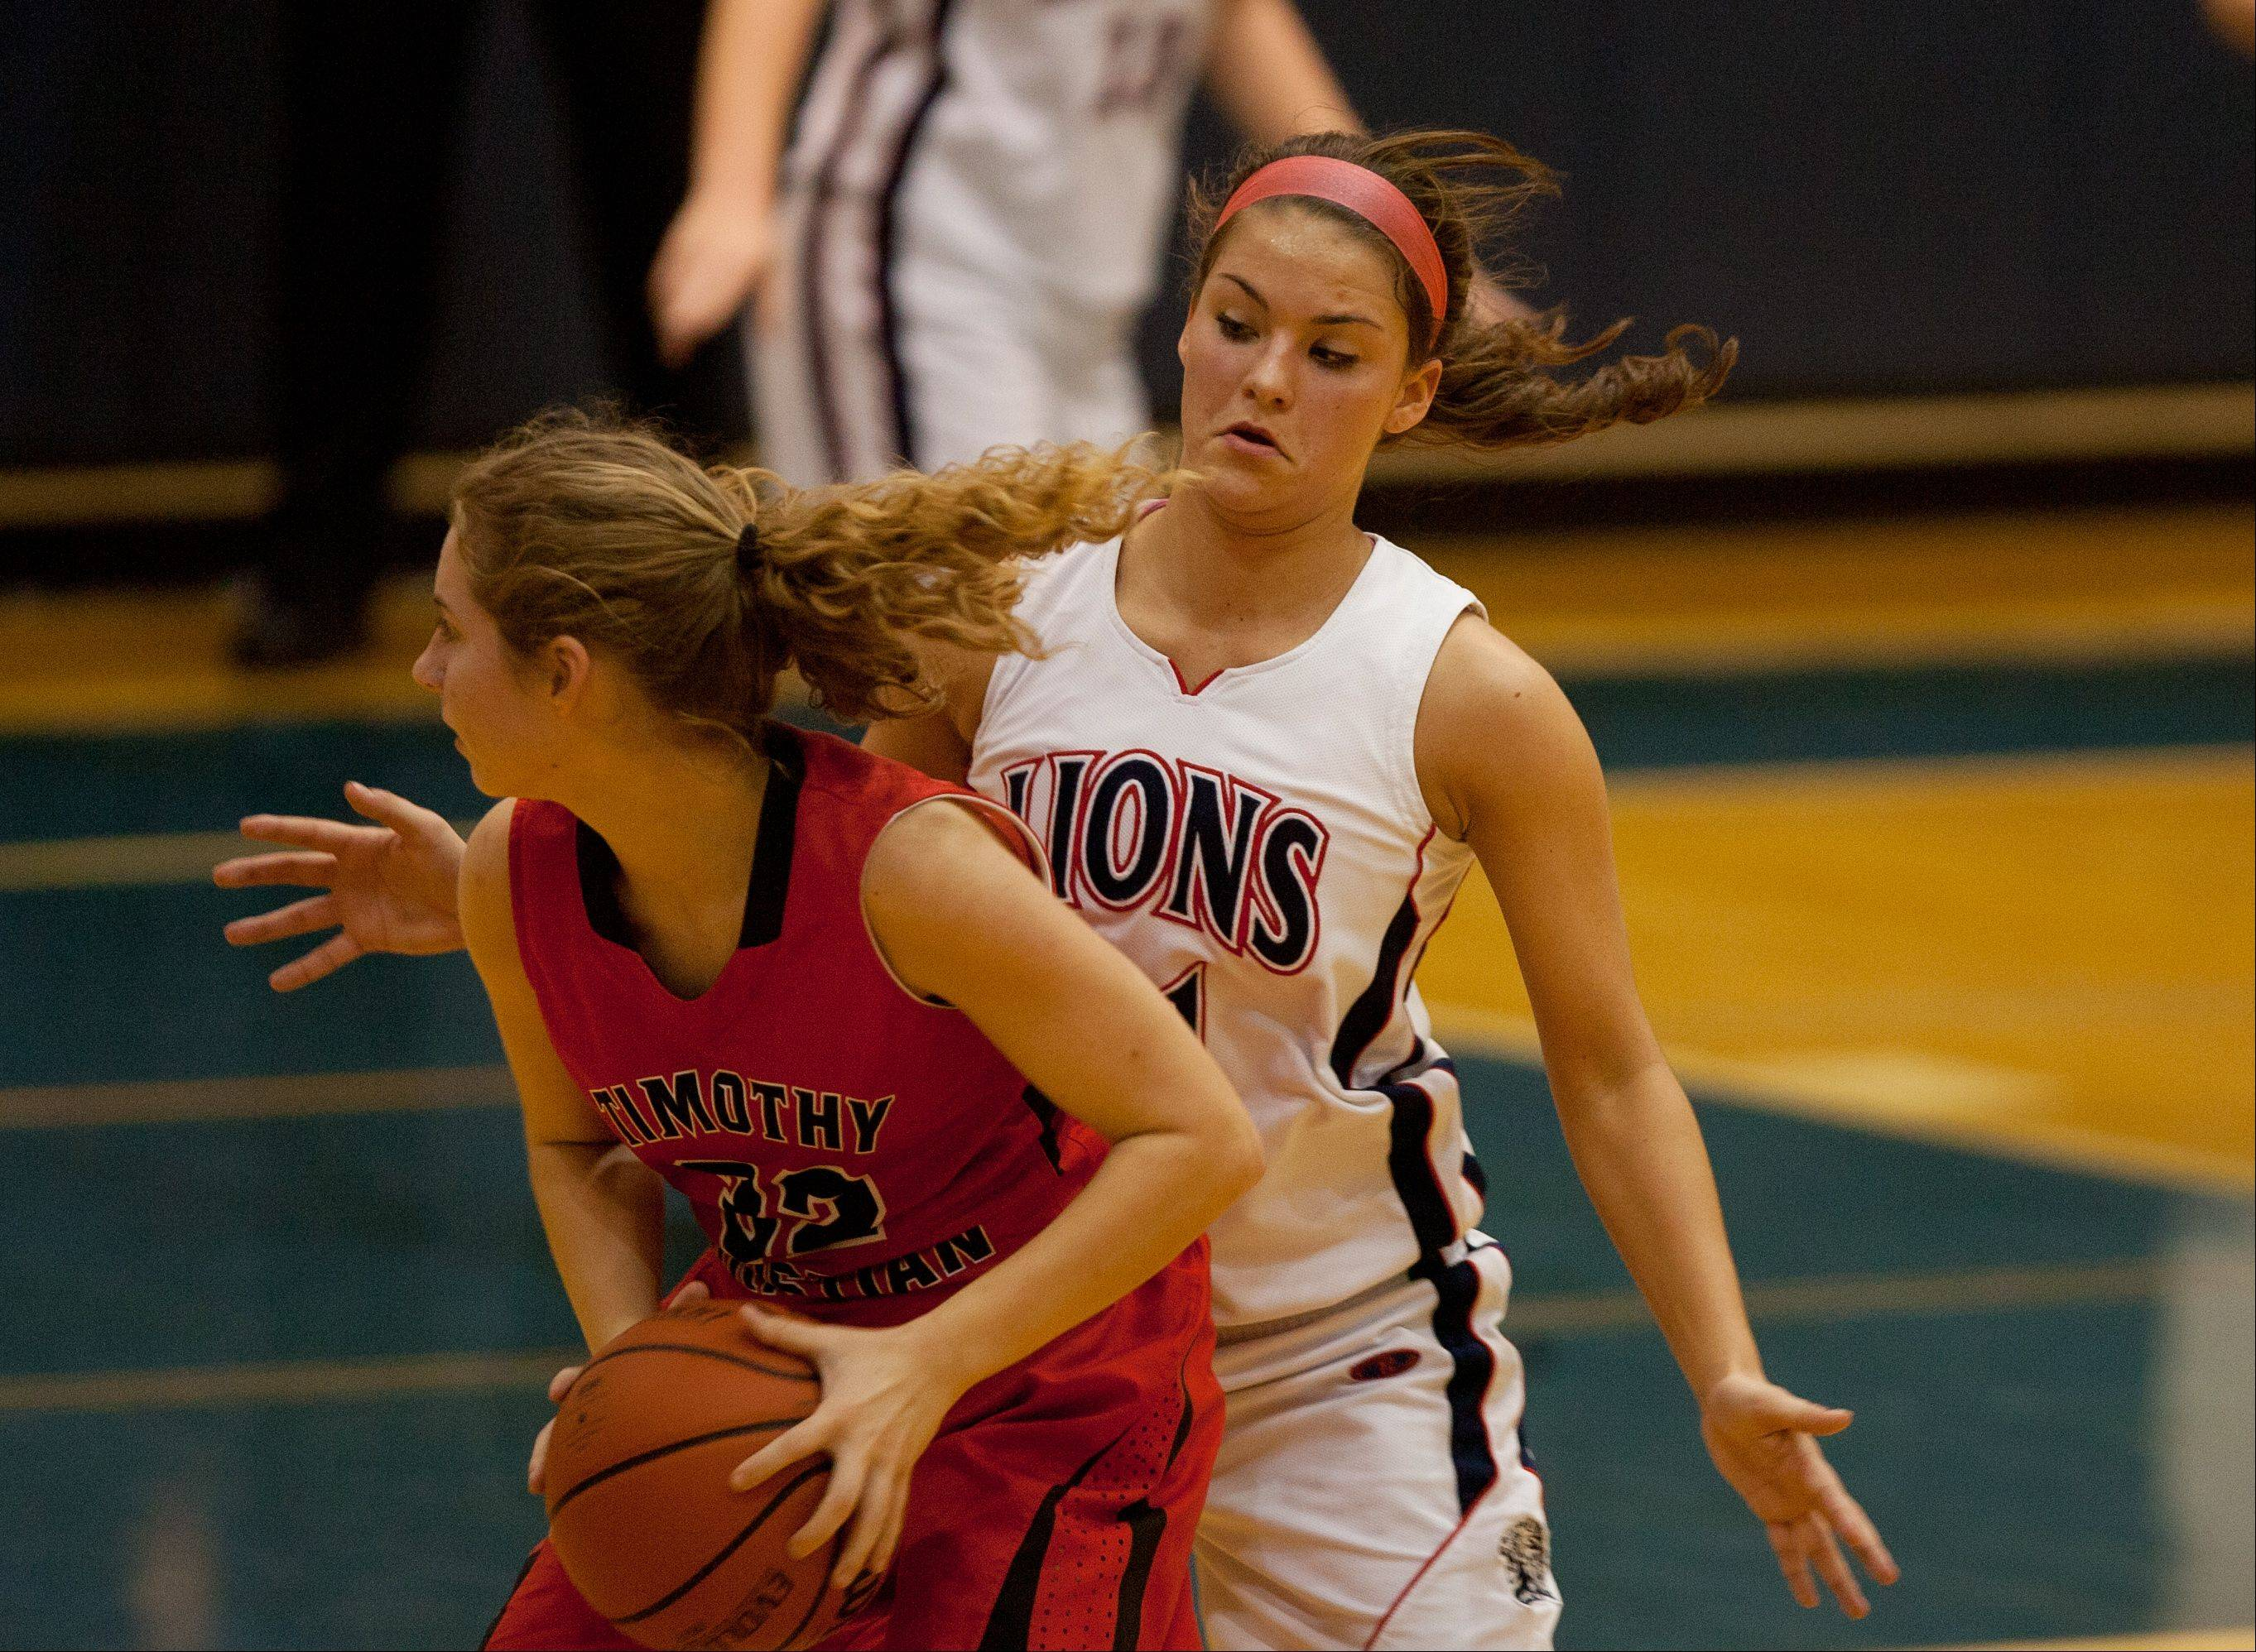 Lisle High School hosted Timothy Christian High School Tuesday night for girls basketball.